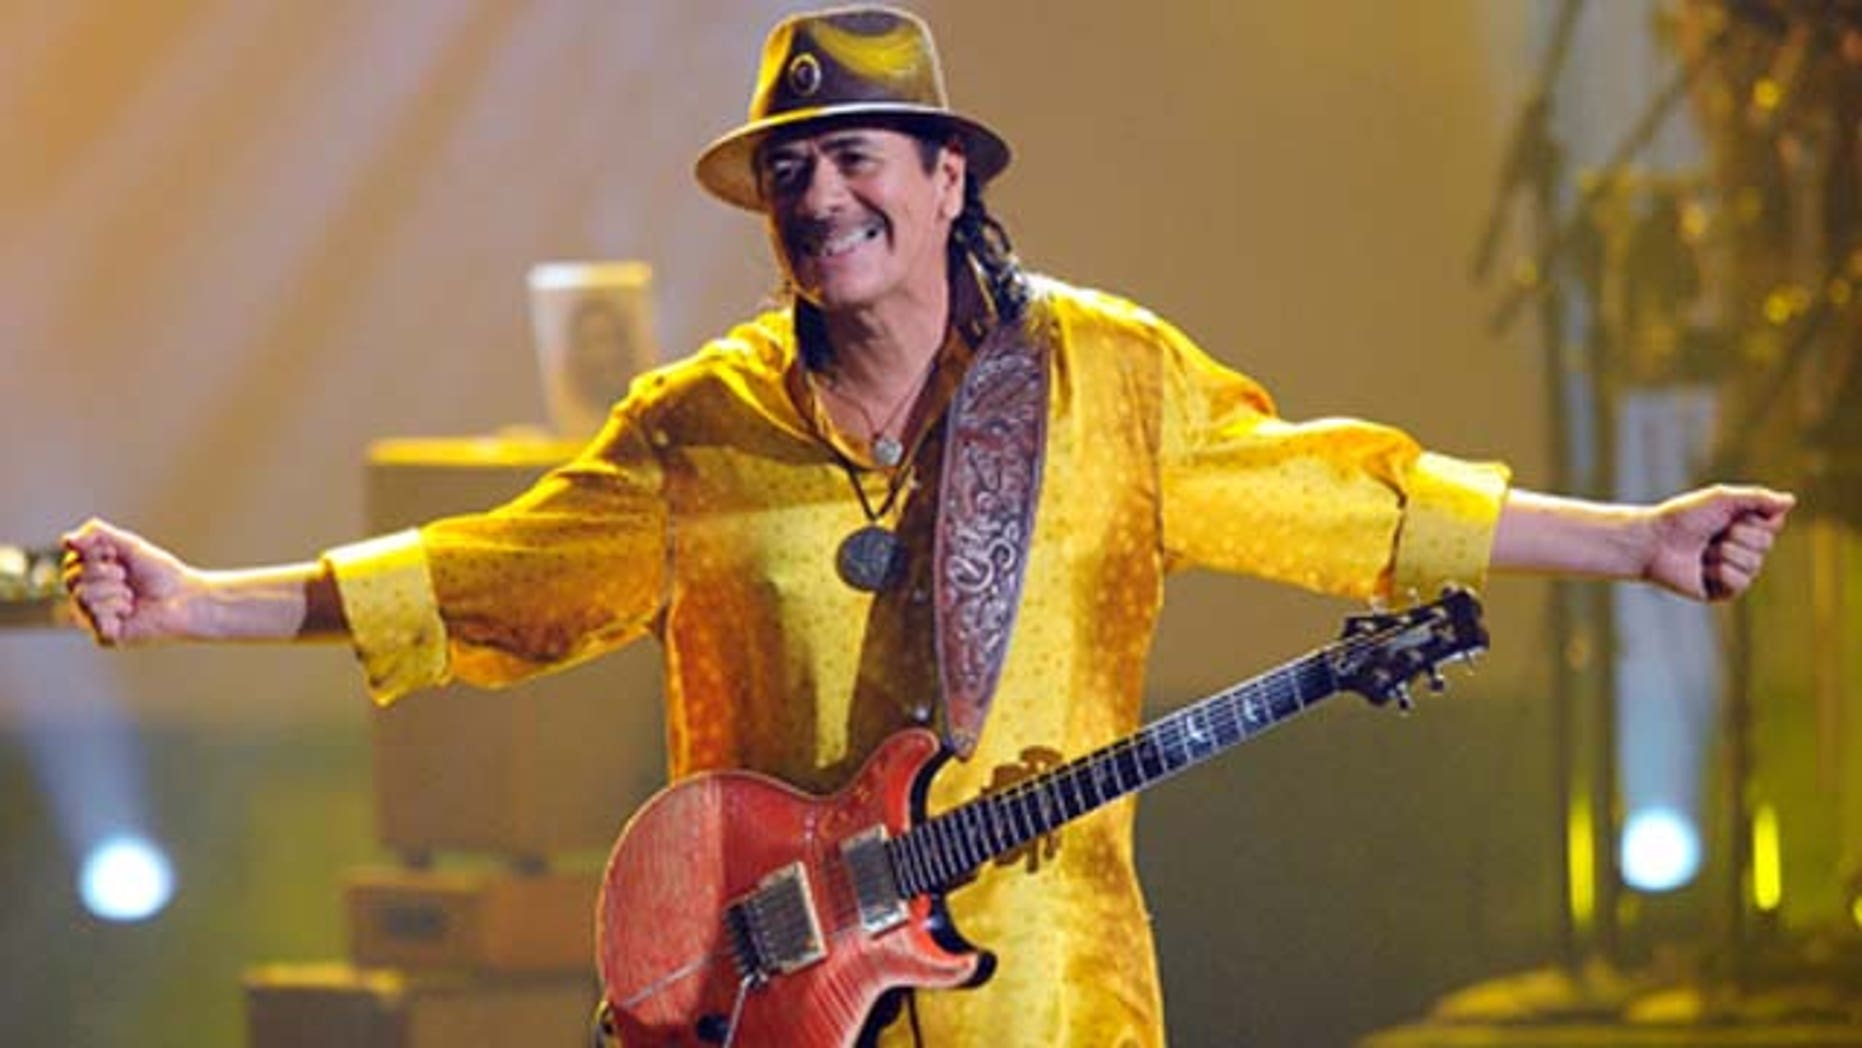 Nov. 21, 2010: Musician Carlos Santana performs onstage during the 2010 American Music Awards held at Nokia Theatre L.A. LiveLos Angeles, Calif.